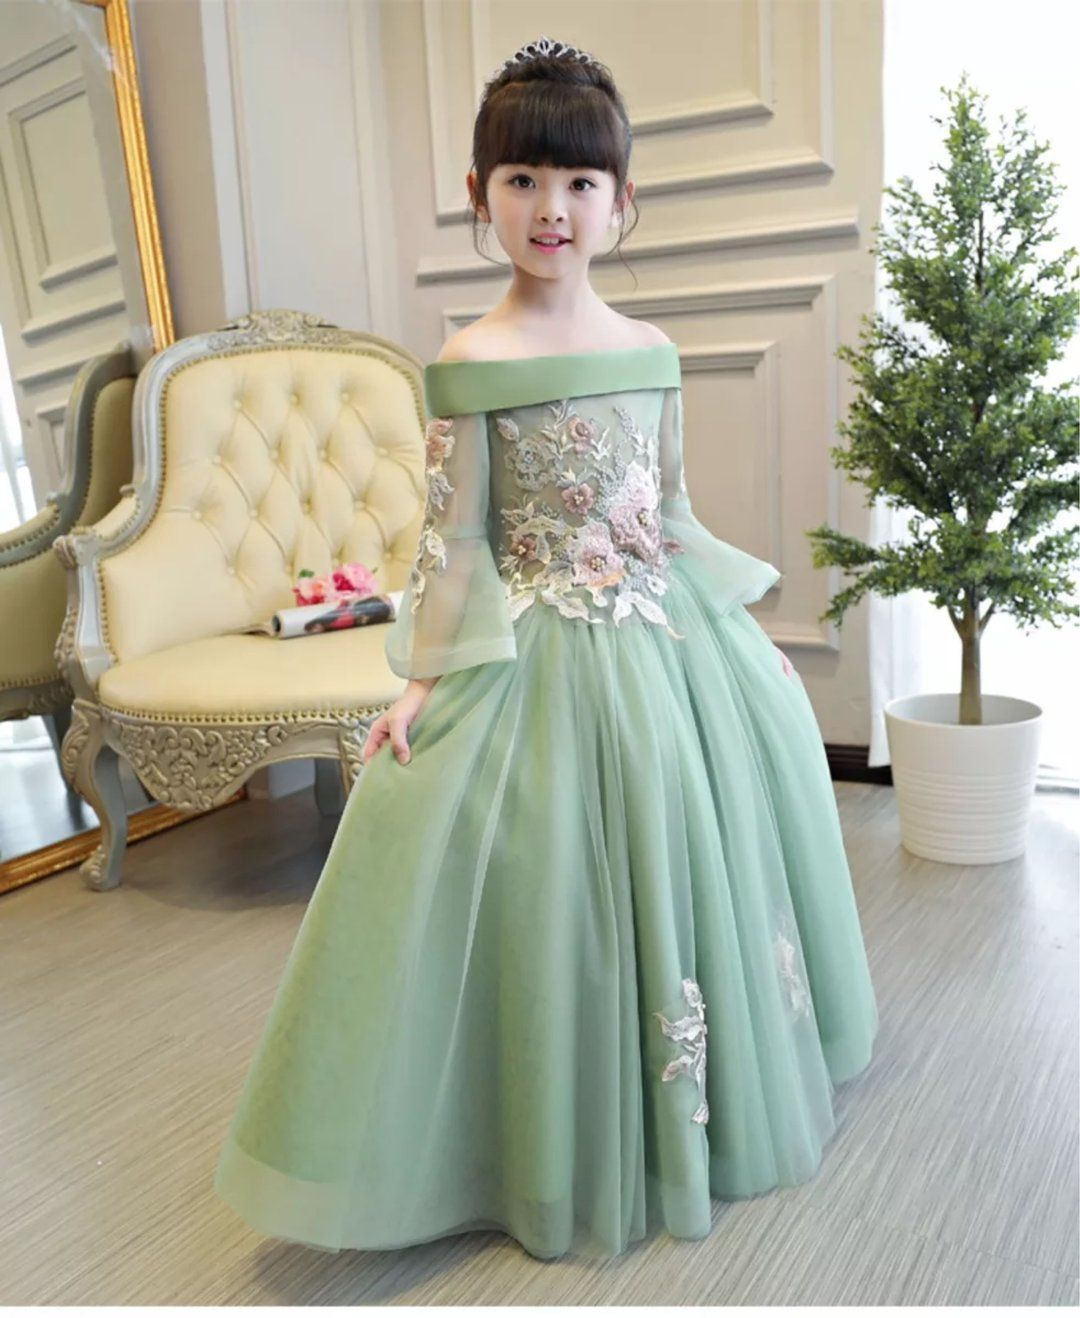 f2ec5f951 Princes Dresses Girls Embroidered Flowers Dress Department Name:Children  Gender:Girls Material:Mesh